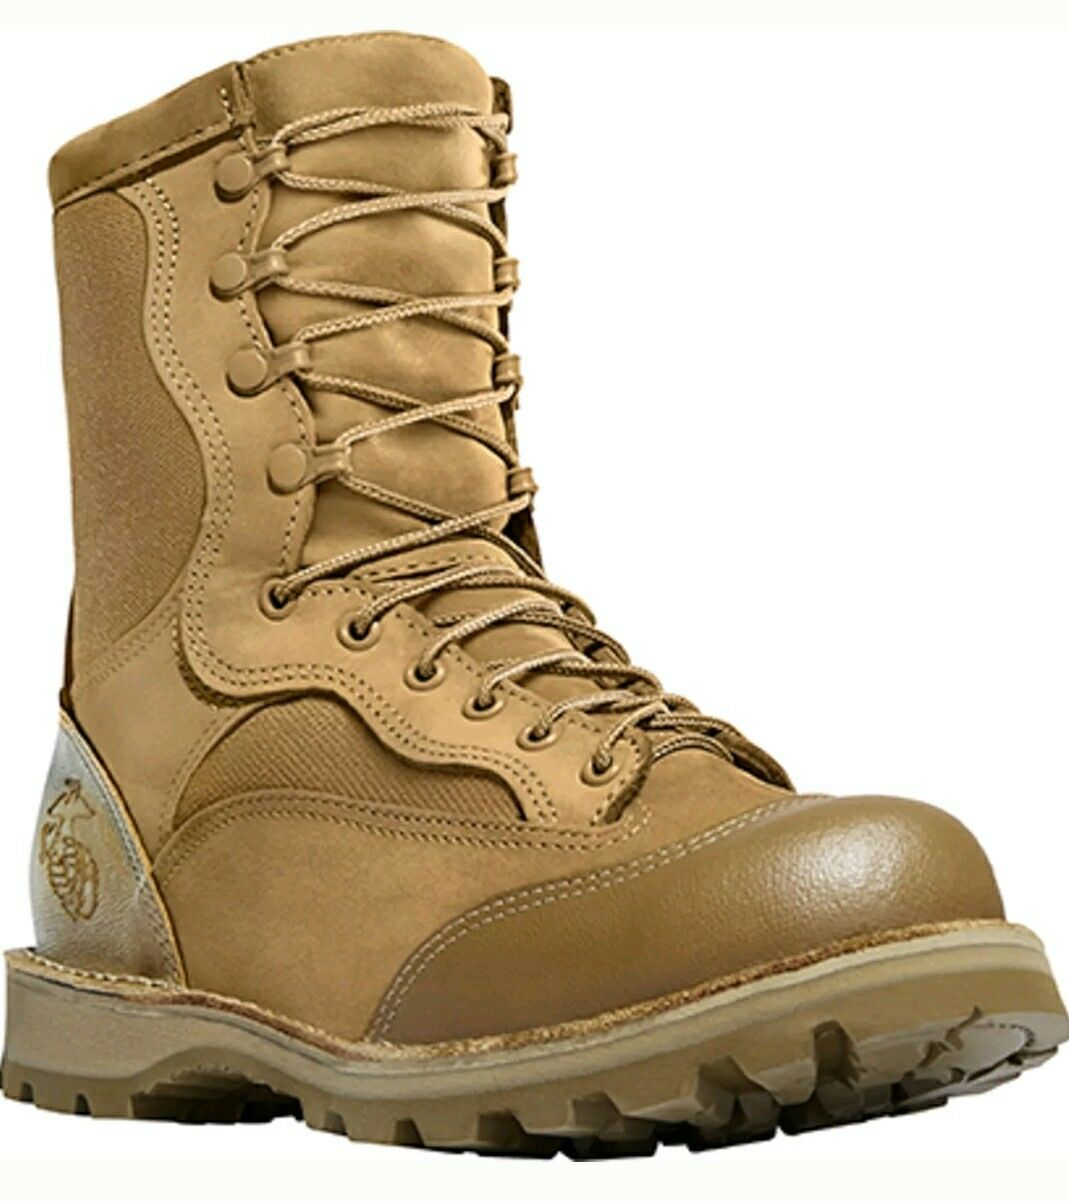 Danner Men's USMC Rat 8  Steel Toe Boot - Size 13